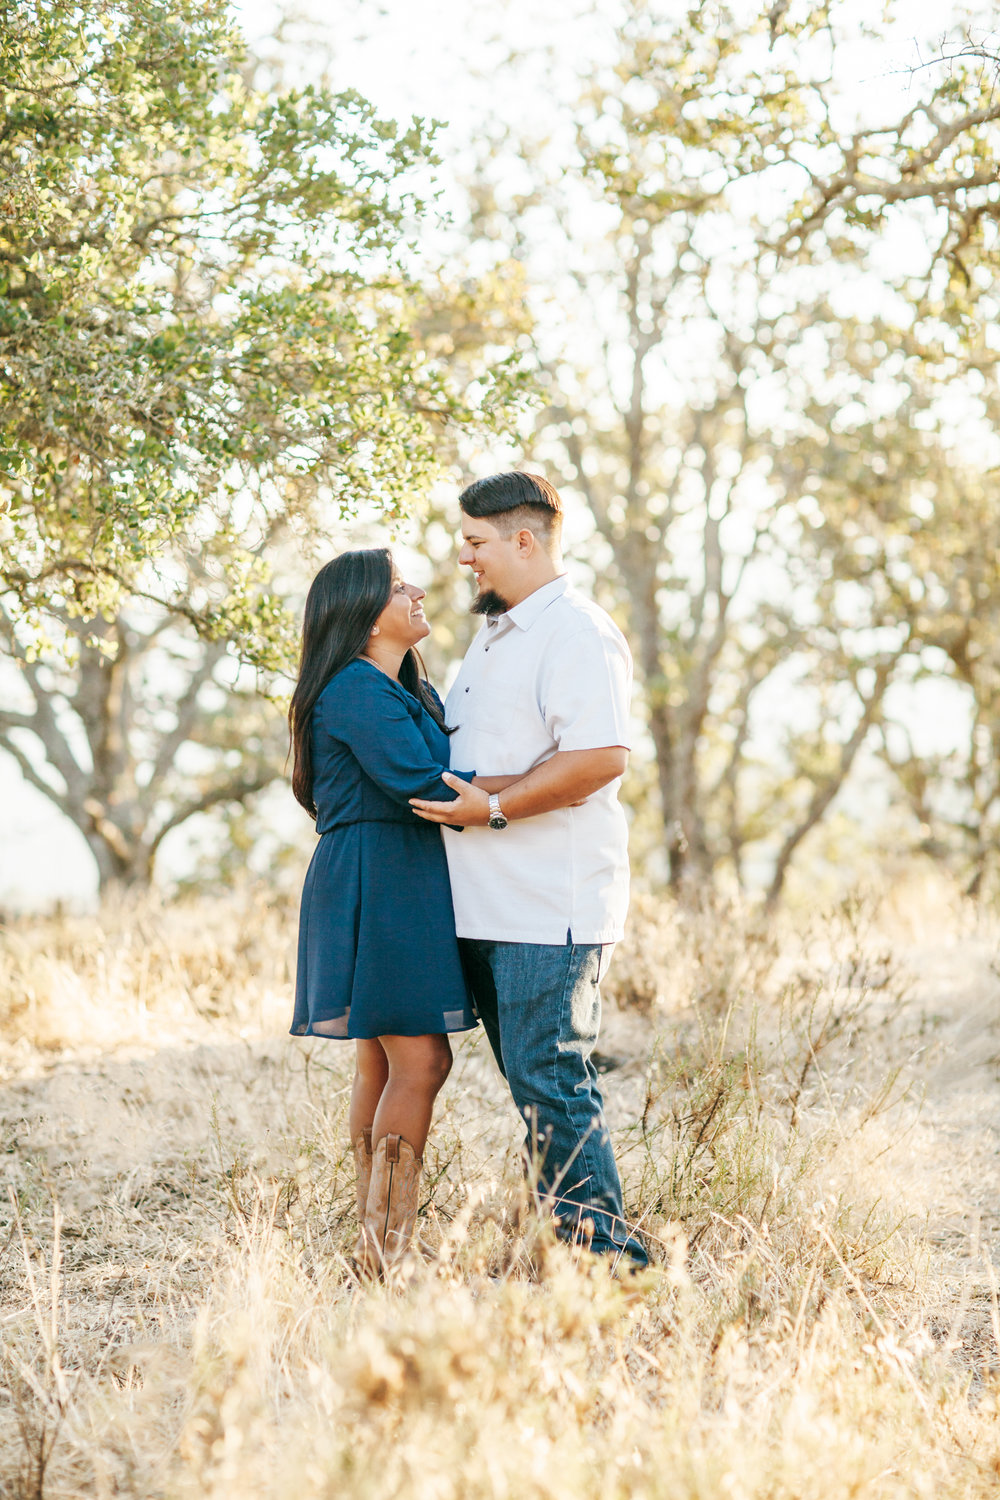 chris-diana-engagement-session-in-walnut-creek-california-06